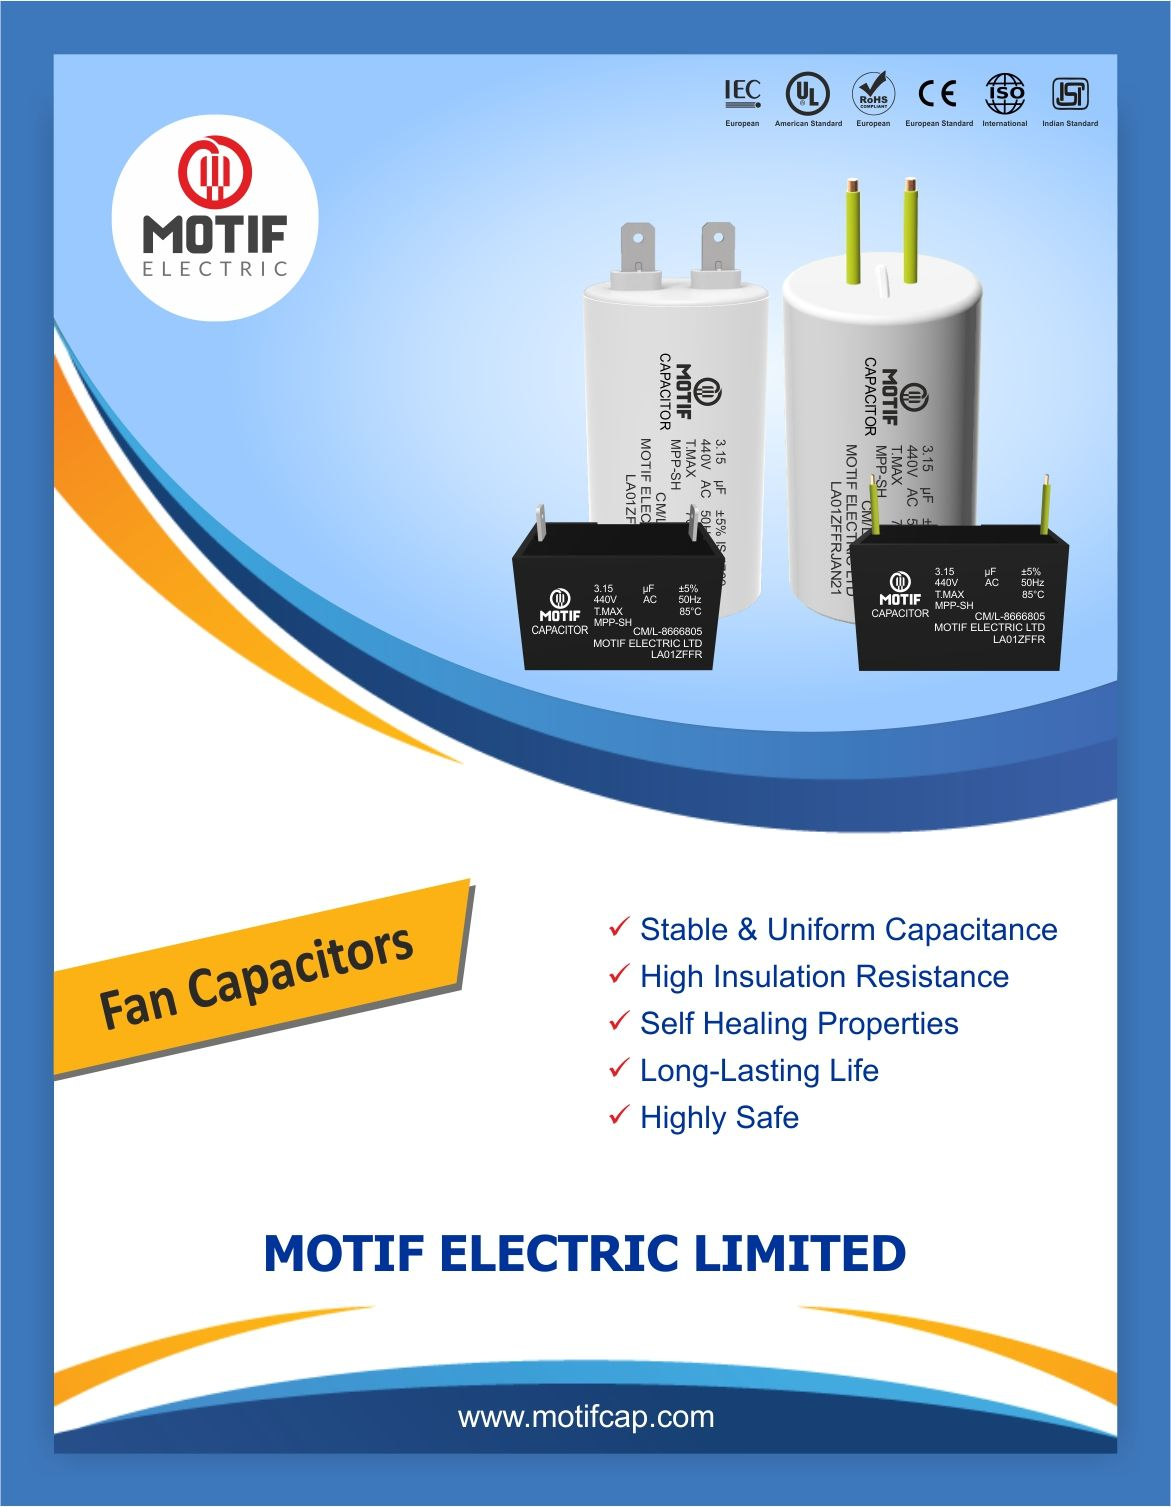 Motif Fan Capacitors In 2020 Capacitors Air Conditioner Capacitor Agricultural Sector